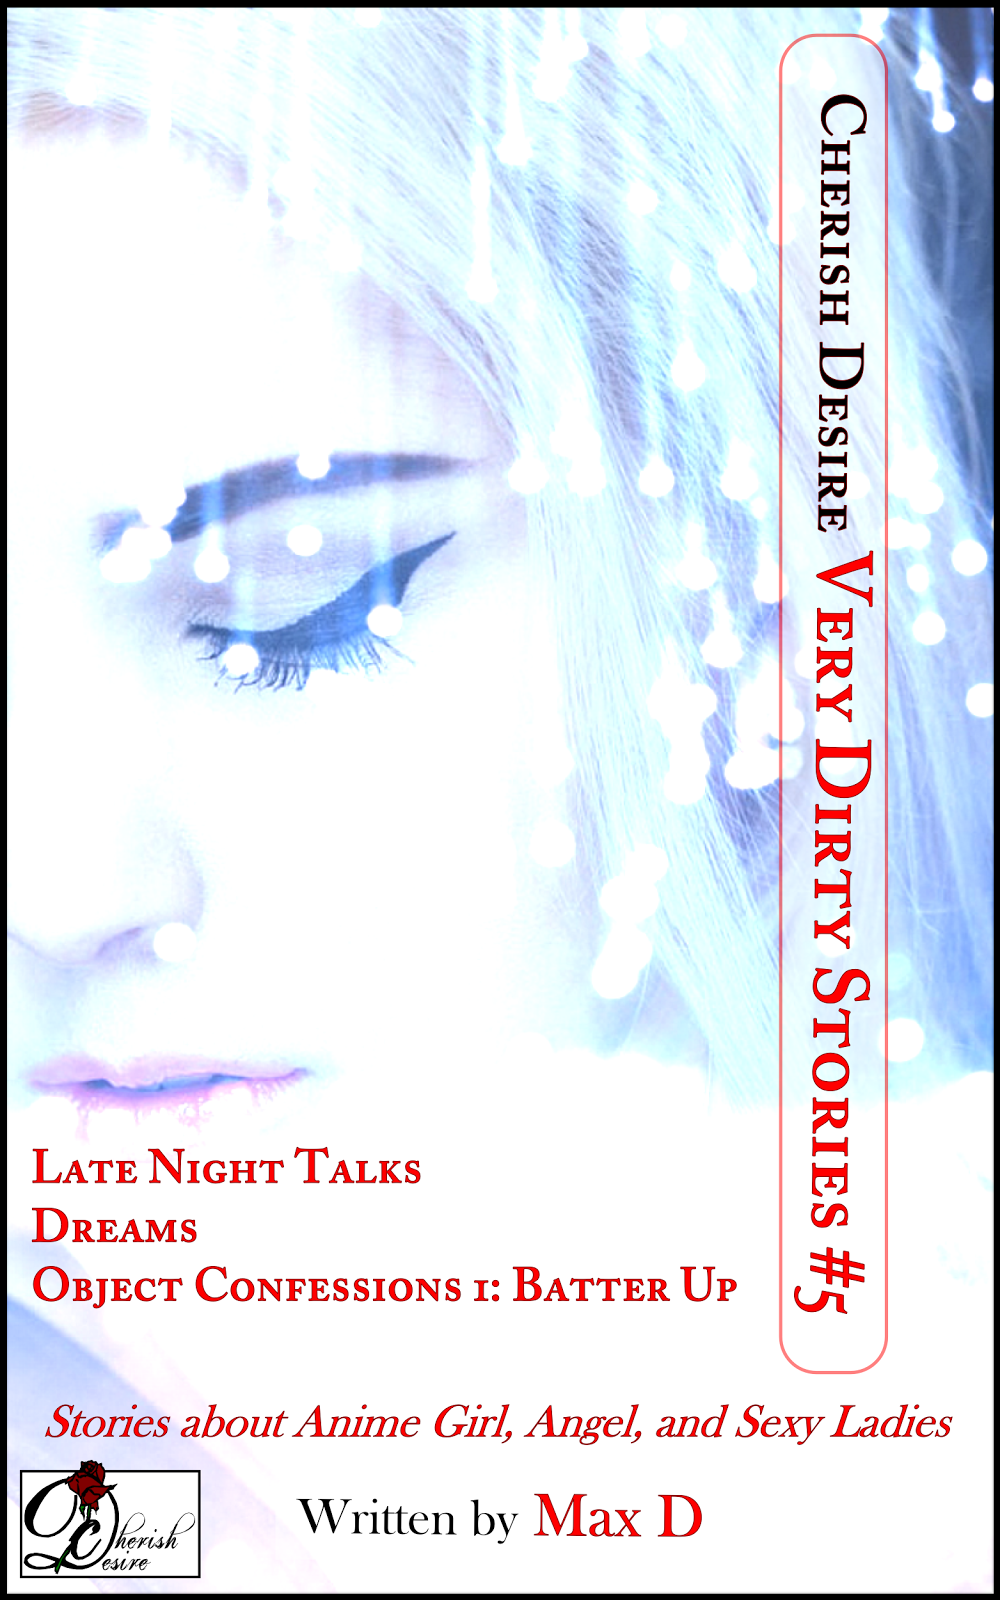 Cherish Desire: Very Dirty Stories #5, Max D, erotica